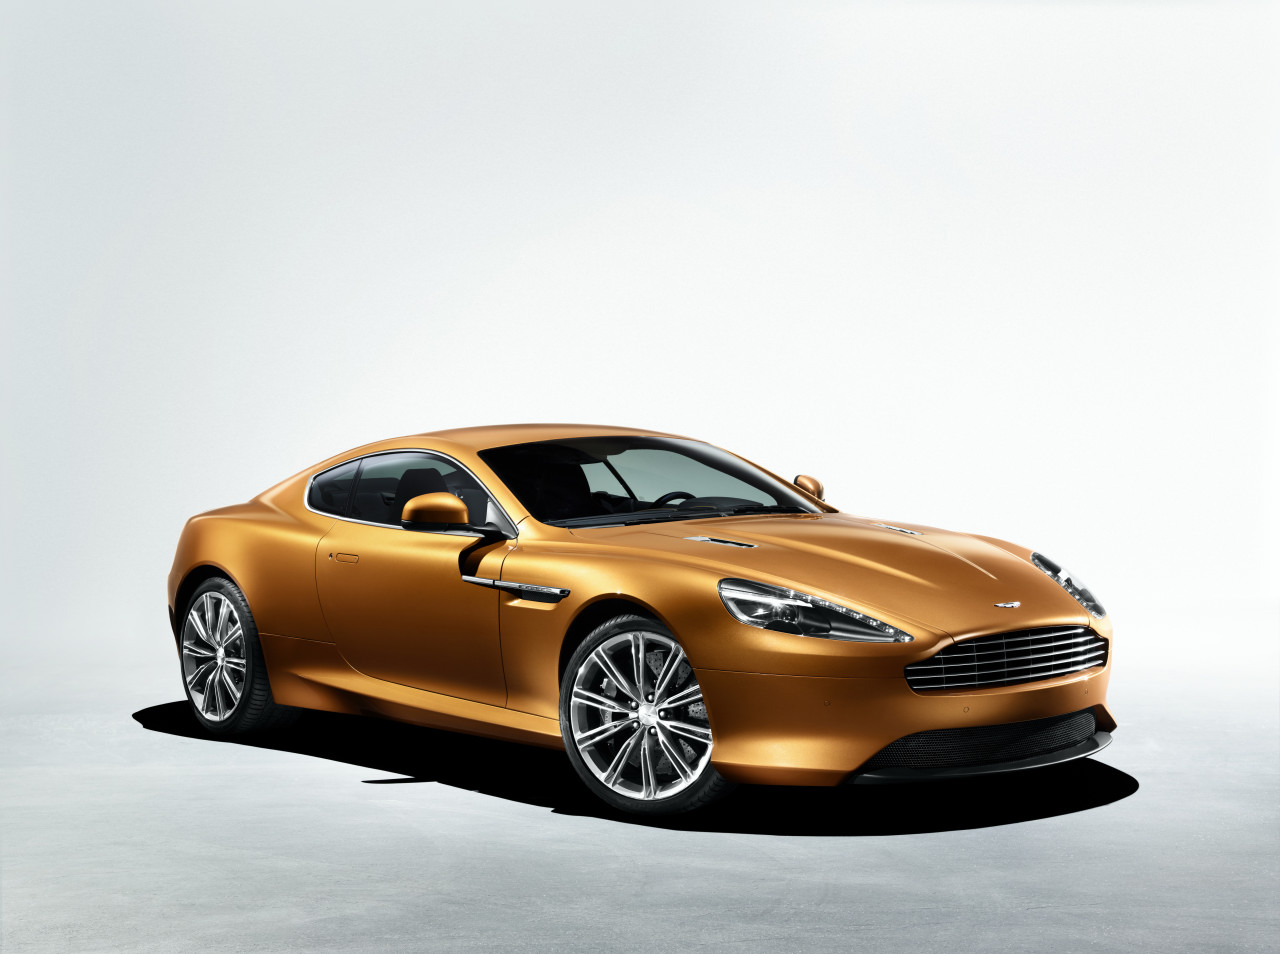 2012 Aston Martin Virage #6